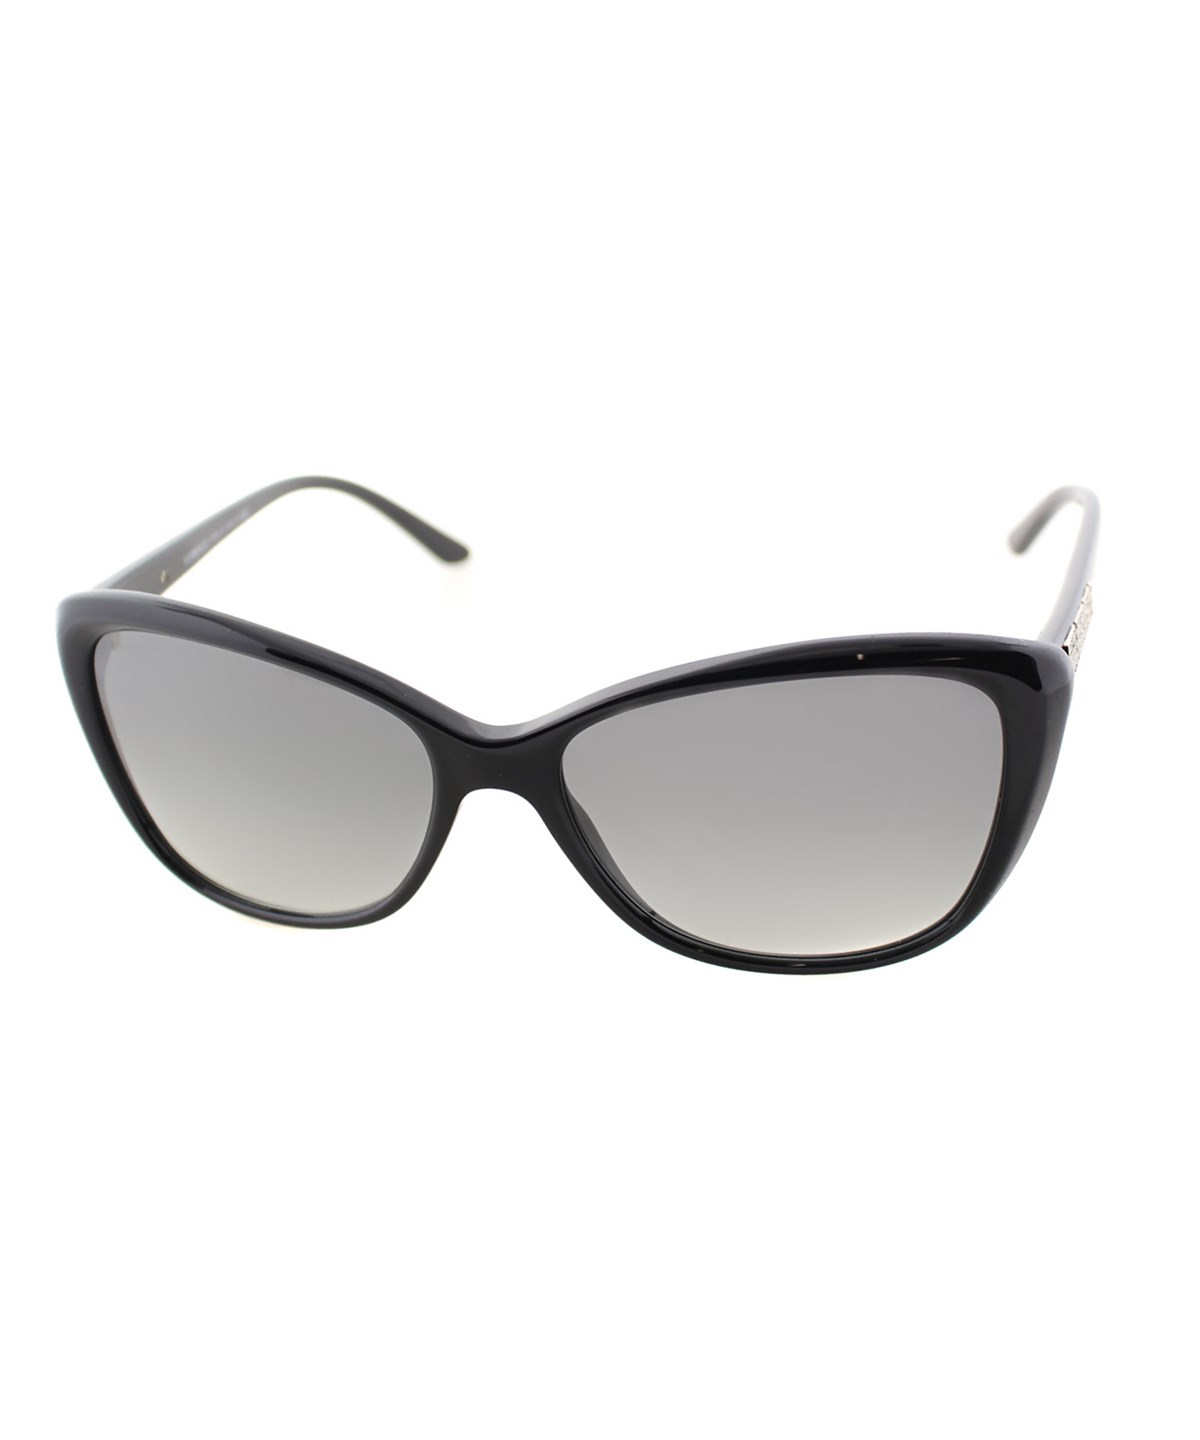 Versace Cat-eye Plastic Sunglasses In Shiny Black